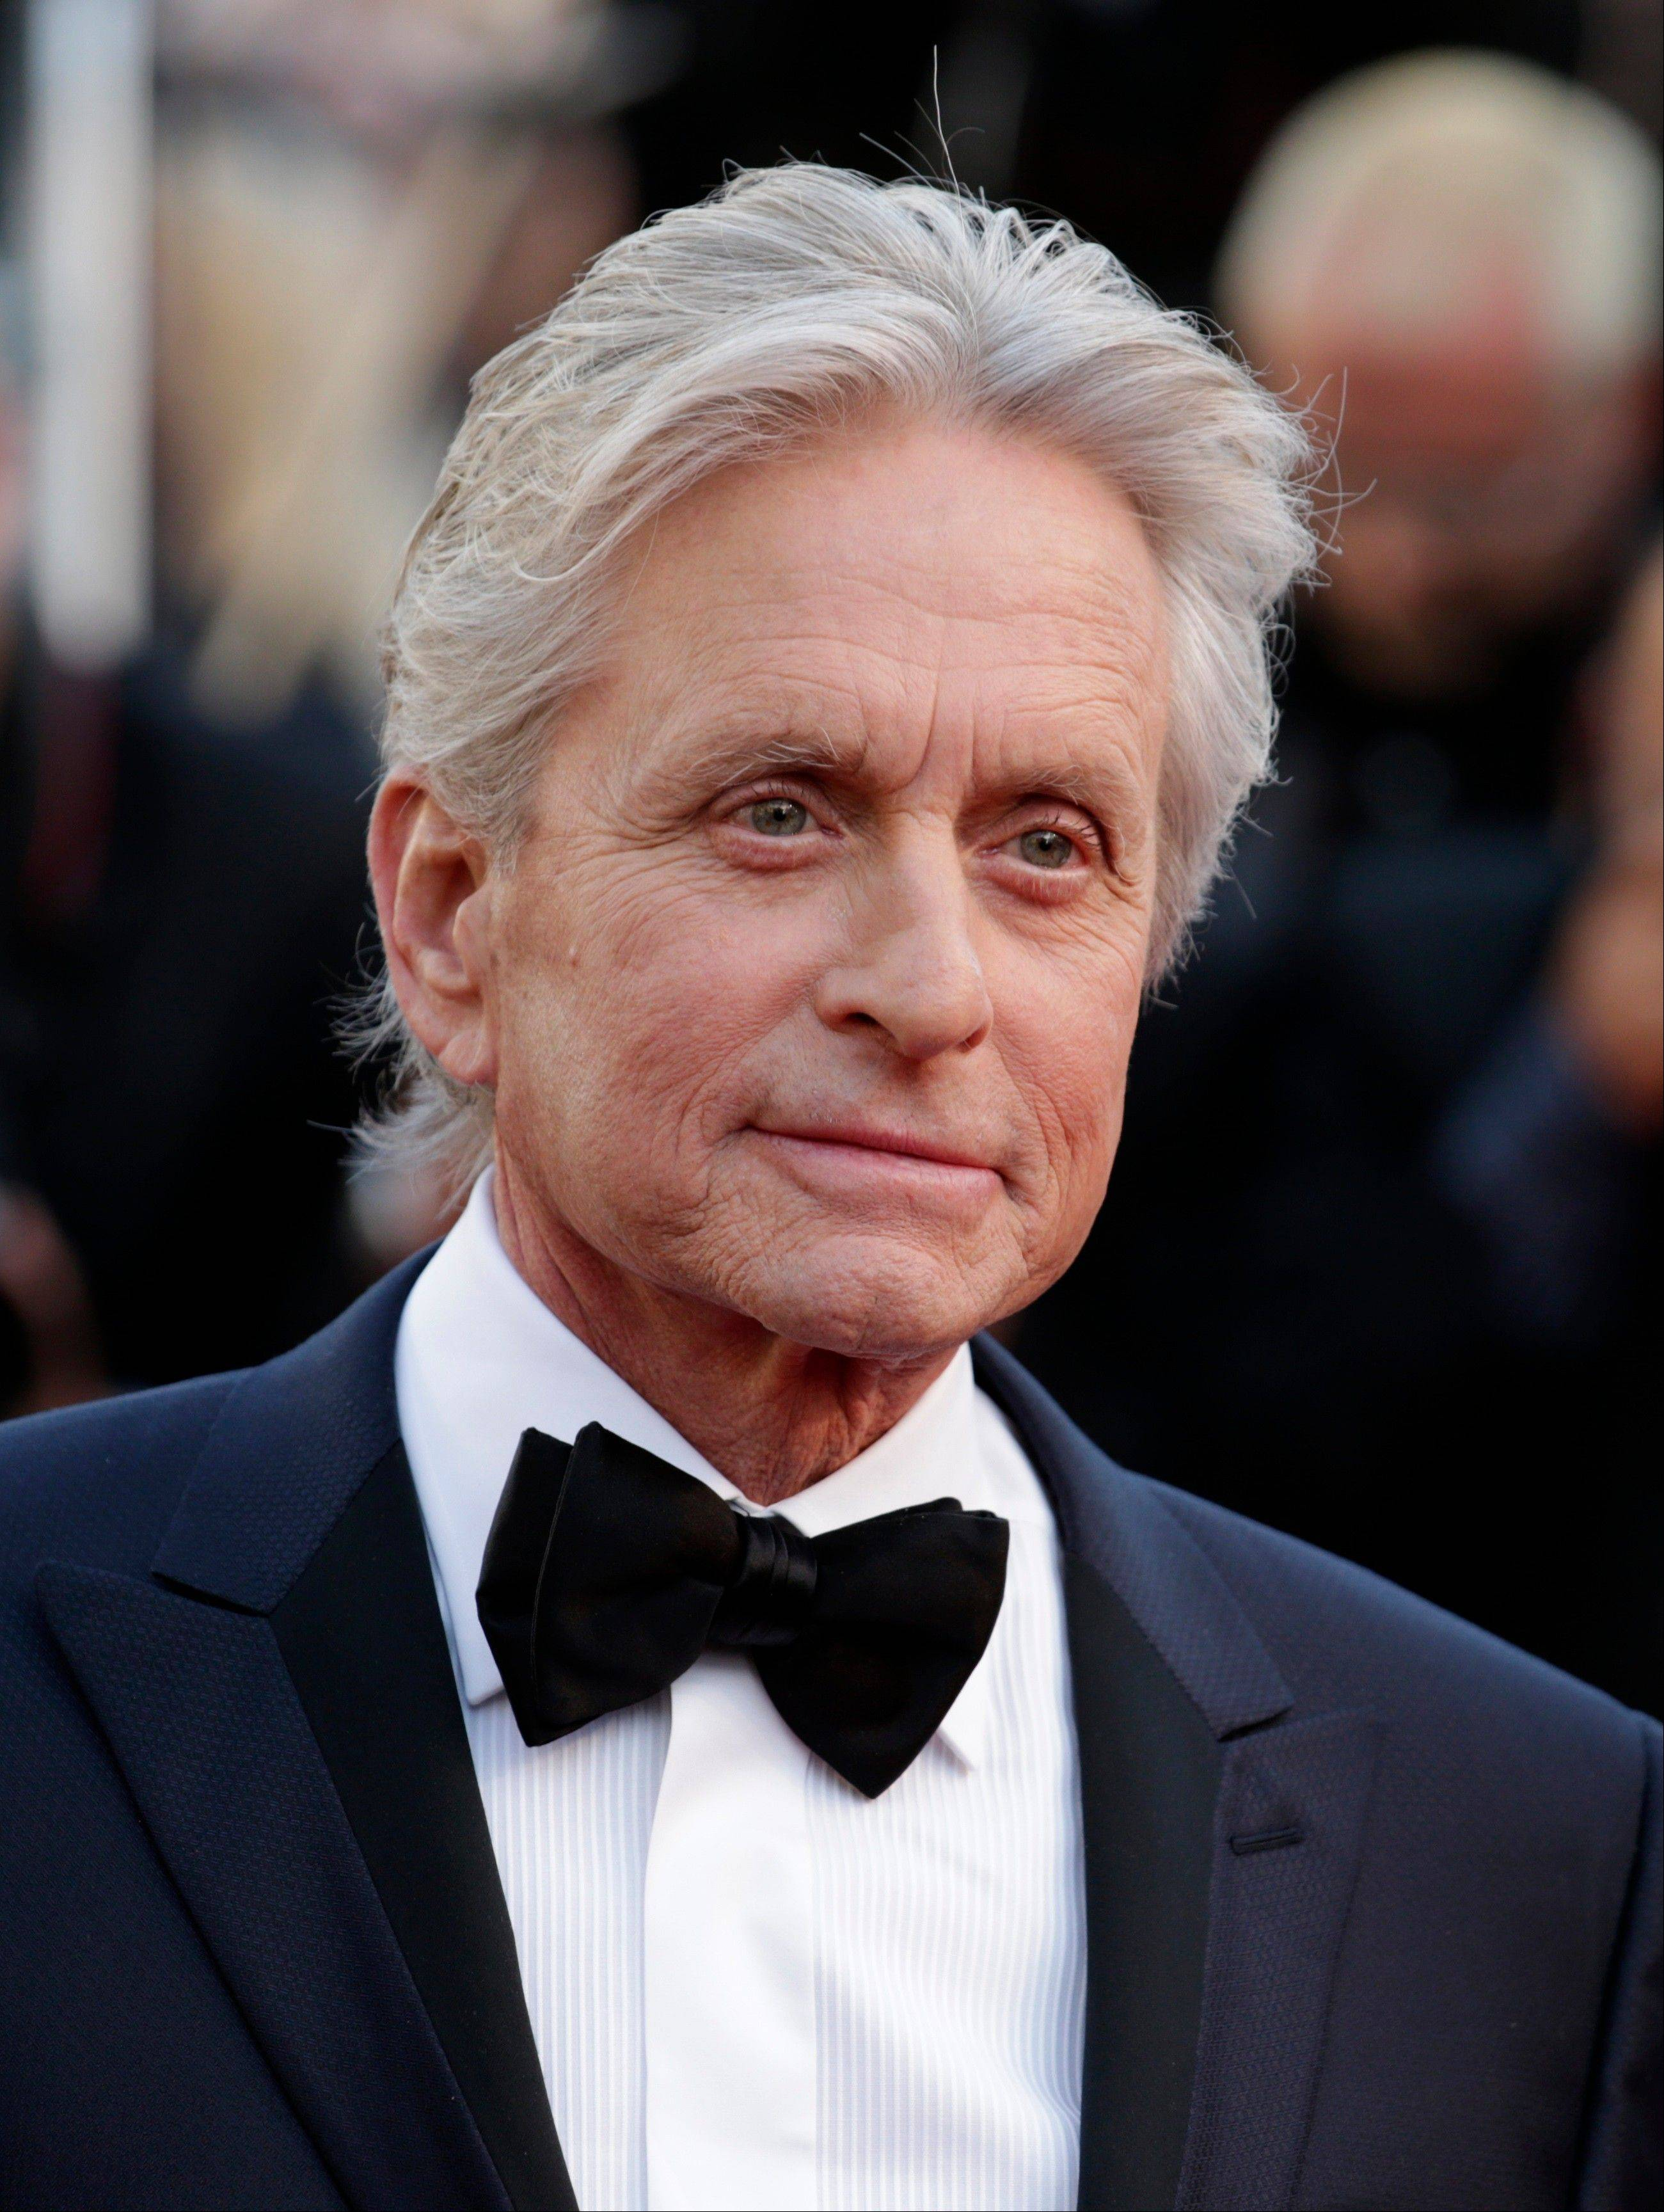 The Guardian newspaper published an interview Monday in which Michael Douglas blamed HPV for his cancer that was diagnosed in 2010. The newspaper also quoted doctors who were skeptical about his claim.